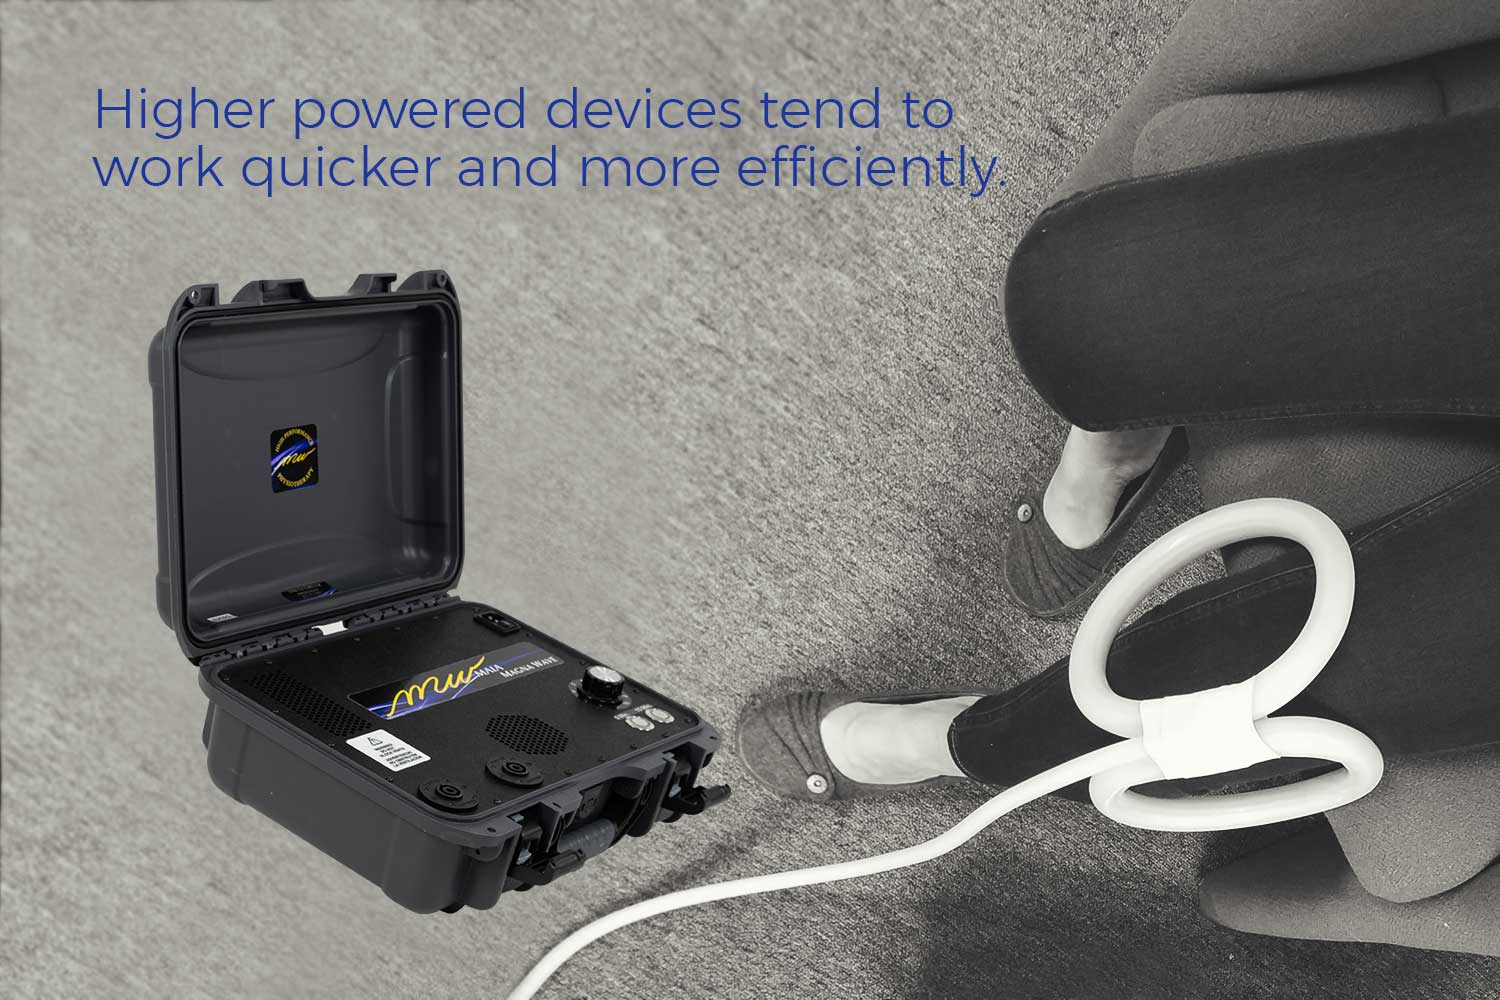 High powered devices tend to work quicker and more efficiently